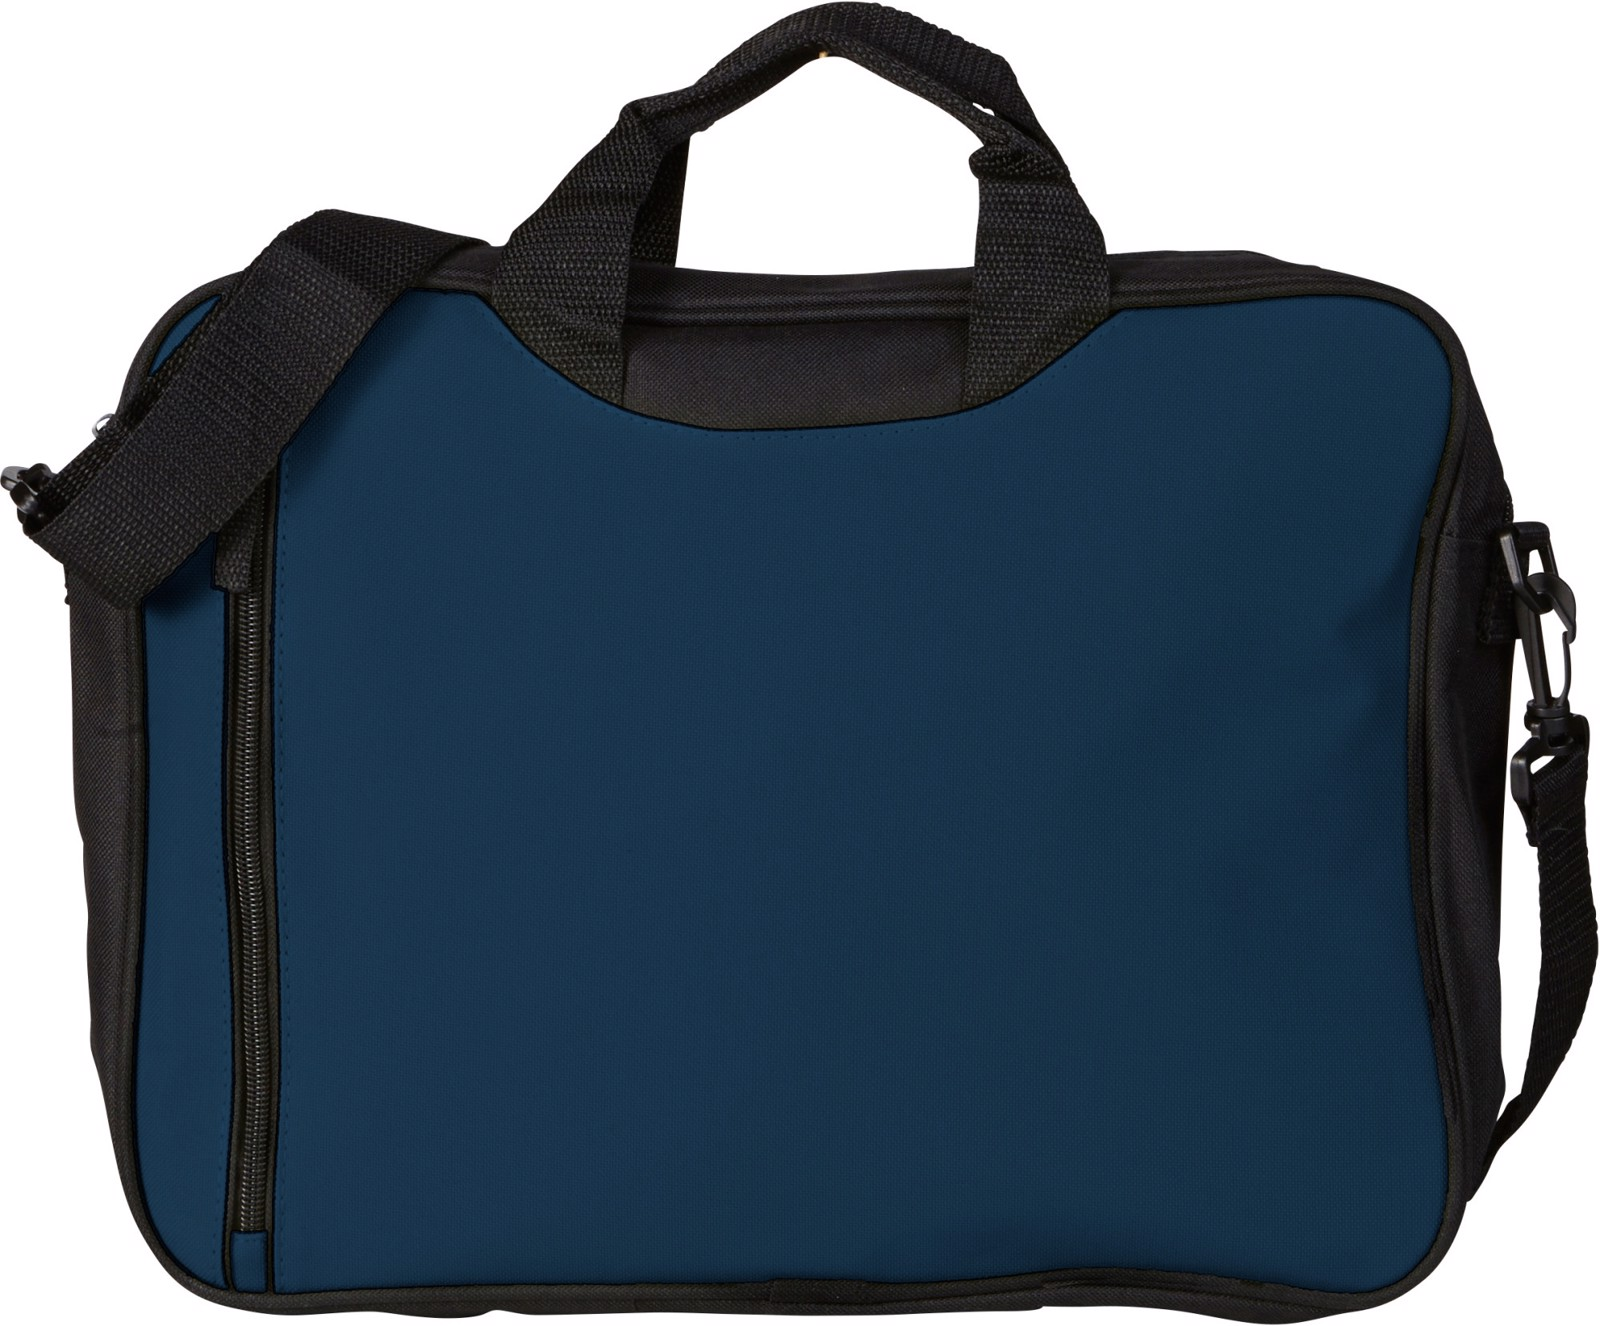 Polyester (600D) shoulder bag - Blue